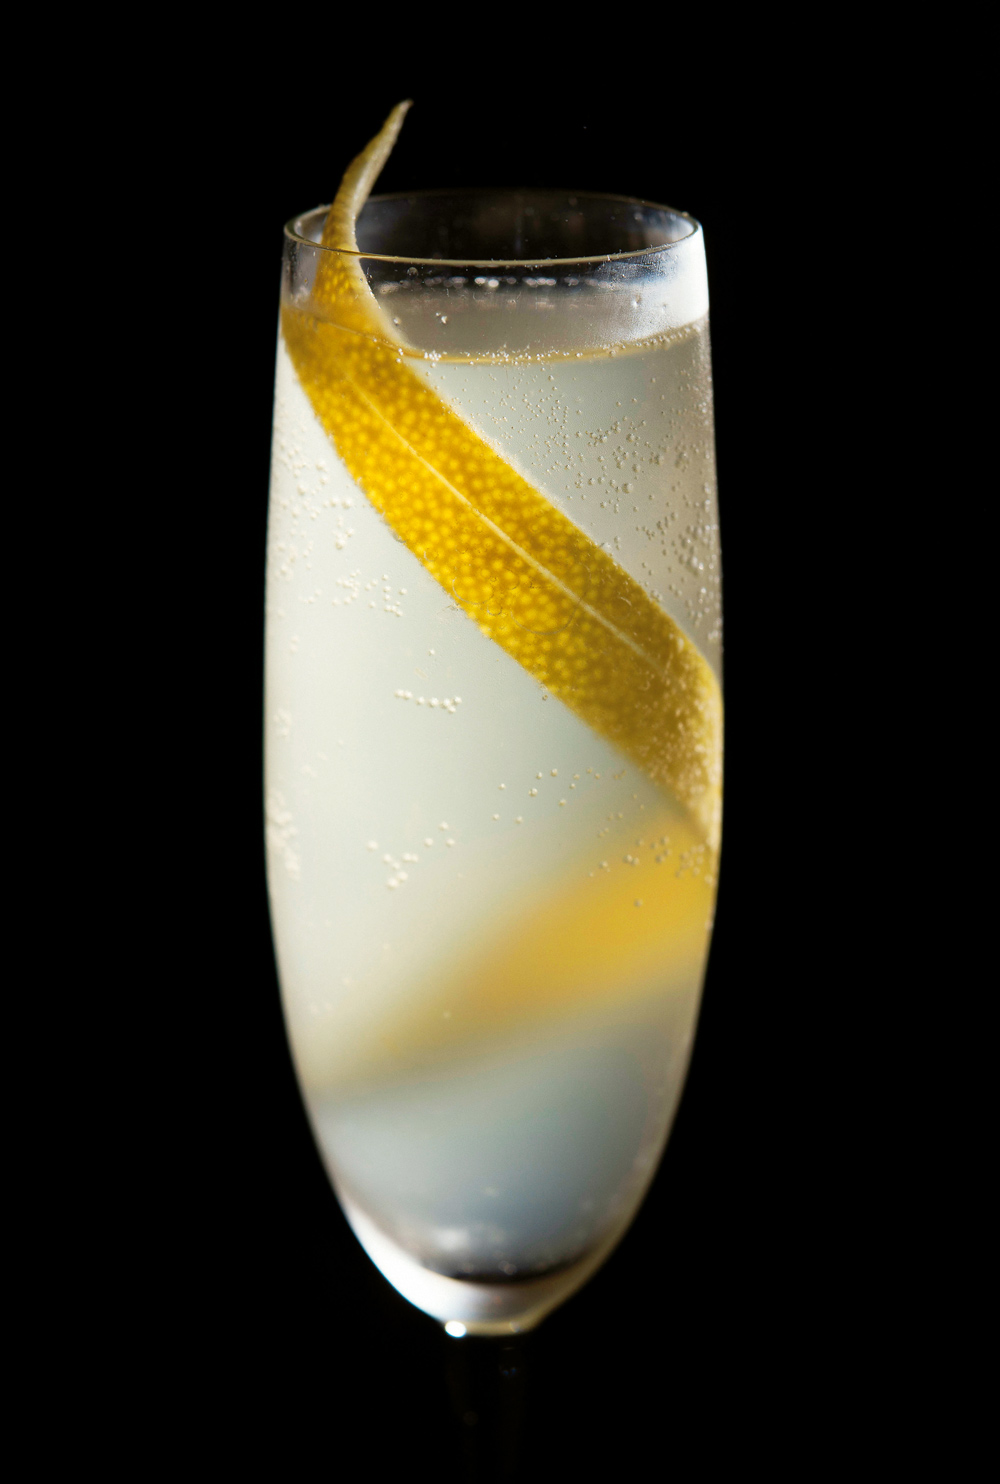 75 Best Latina Chicks Images On Pinterest: Keep It Classy With This French 75 Recipe